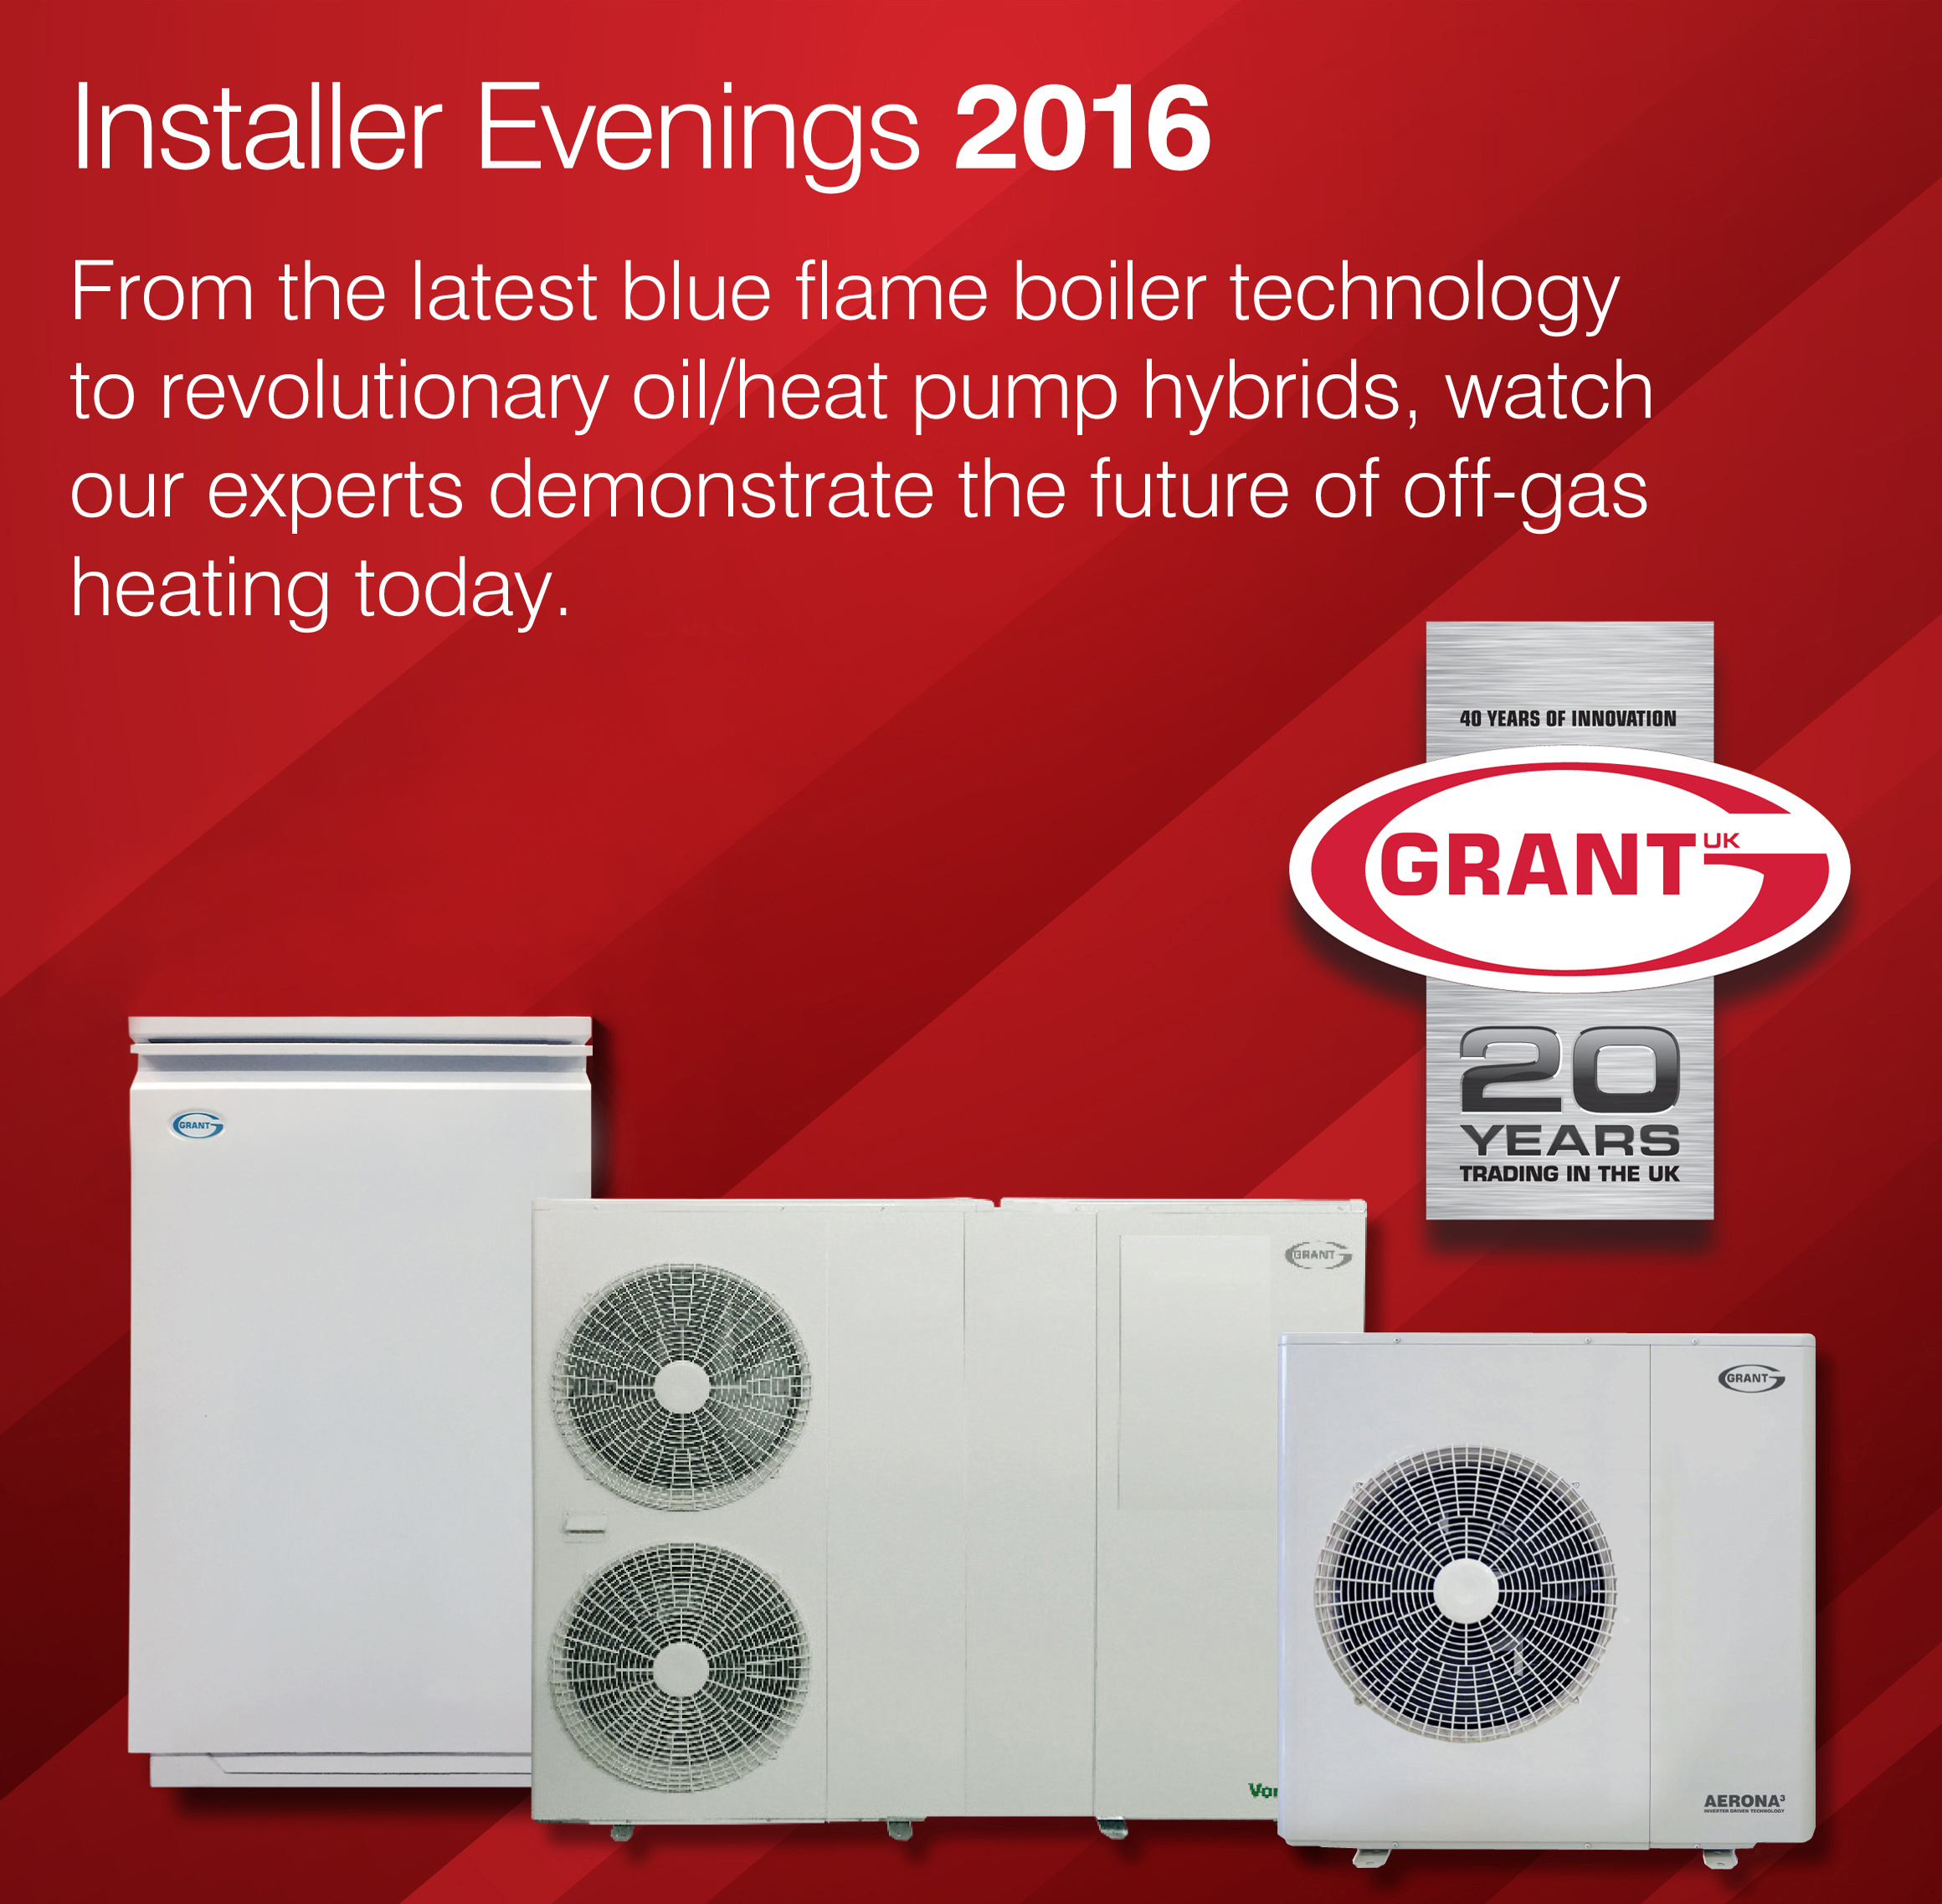 The next generation of off-gas heating: Grant UK to host series of technical evenings